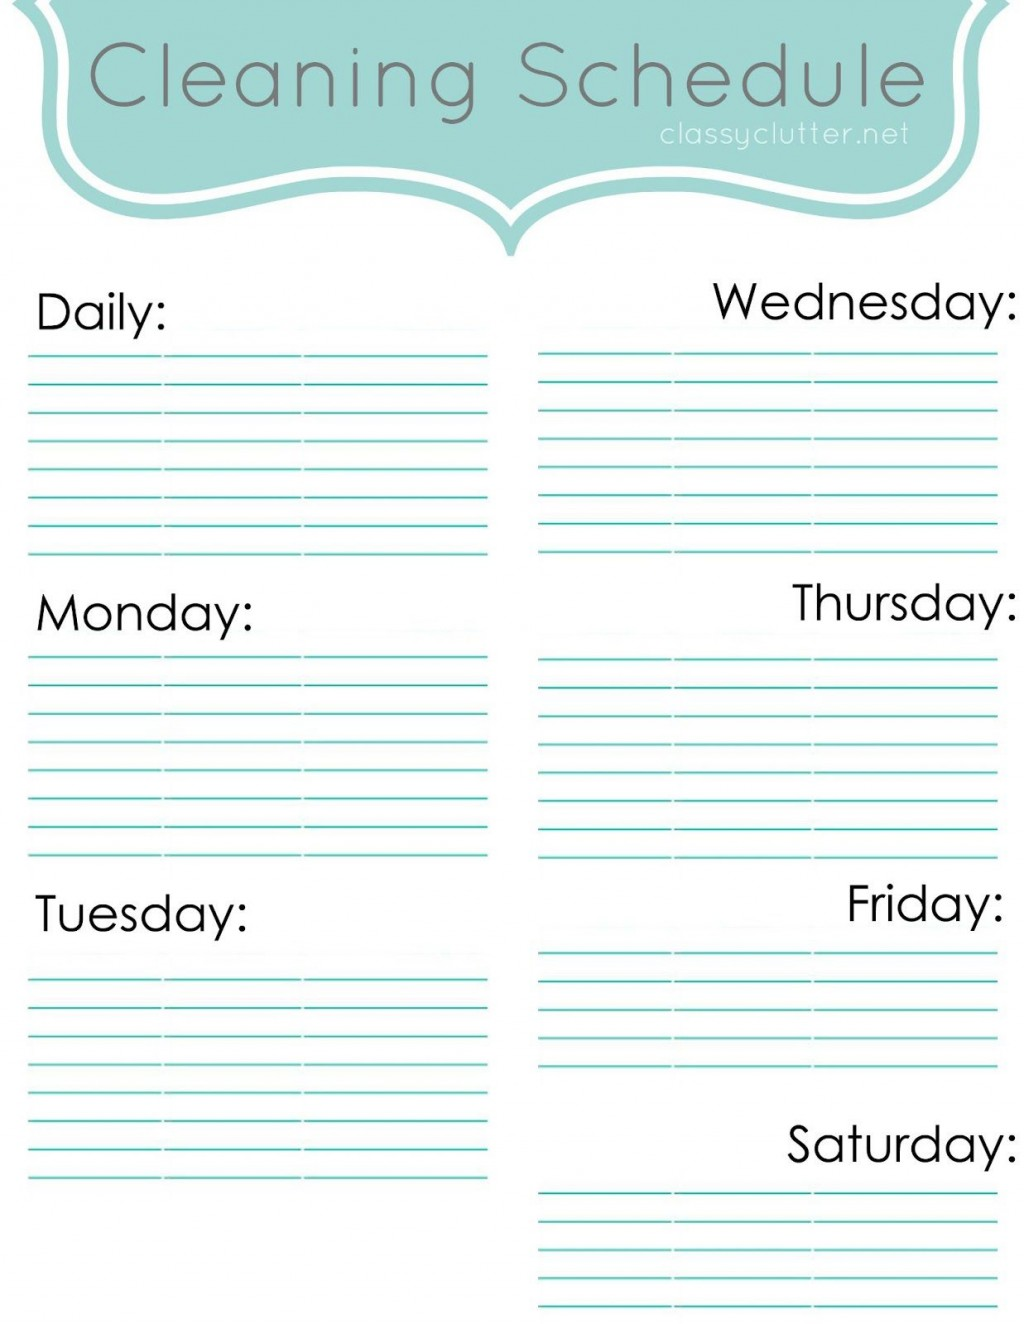 009 Striking Weekly Cleaning Schedule Format Highest Clarity  Template Free SampleLarge